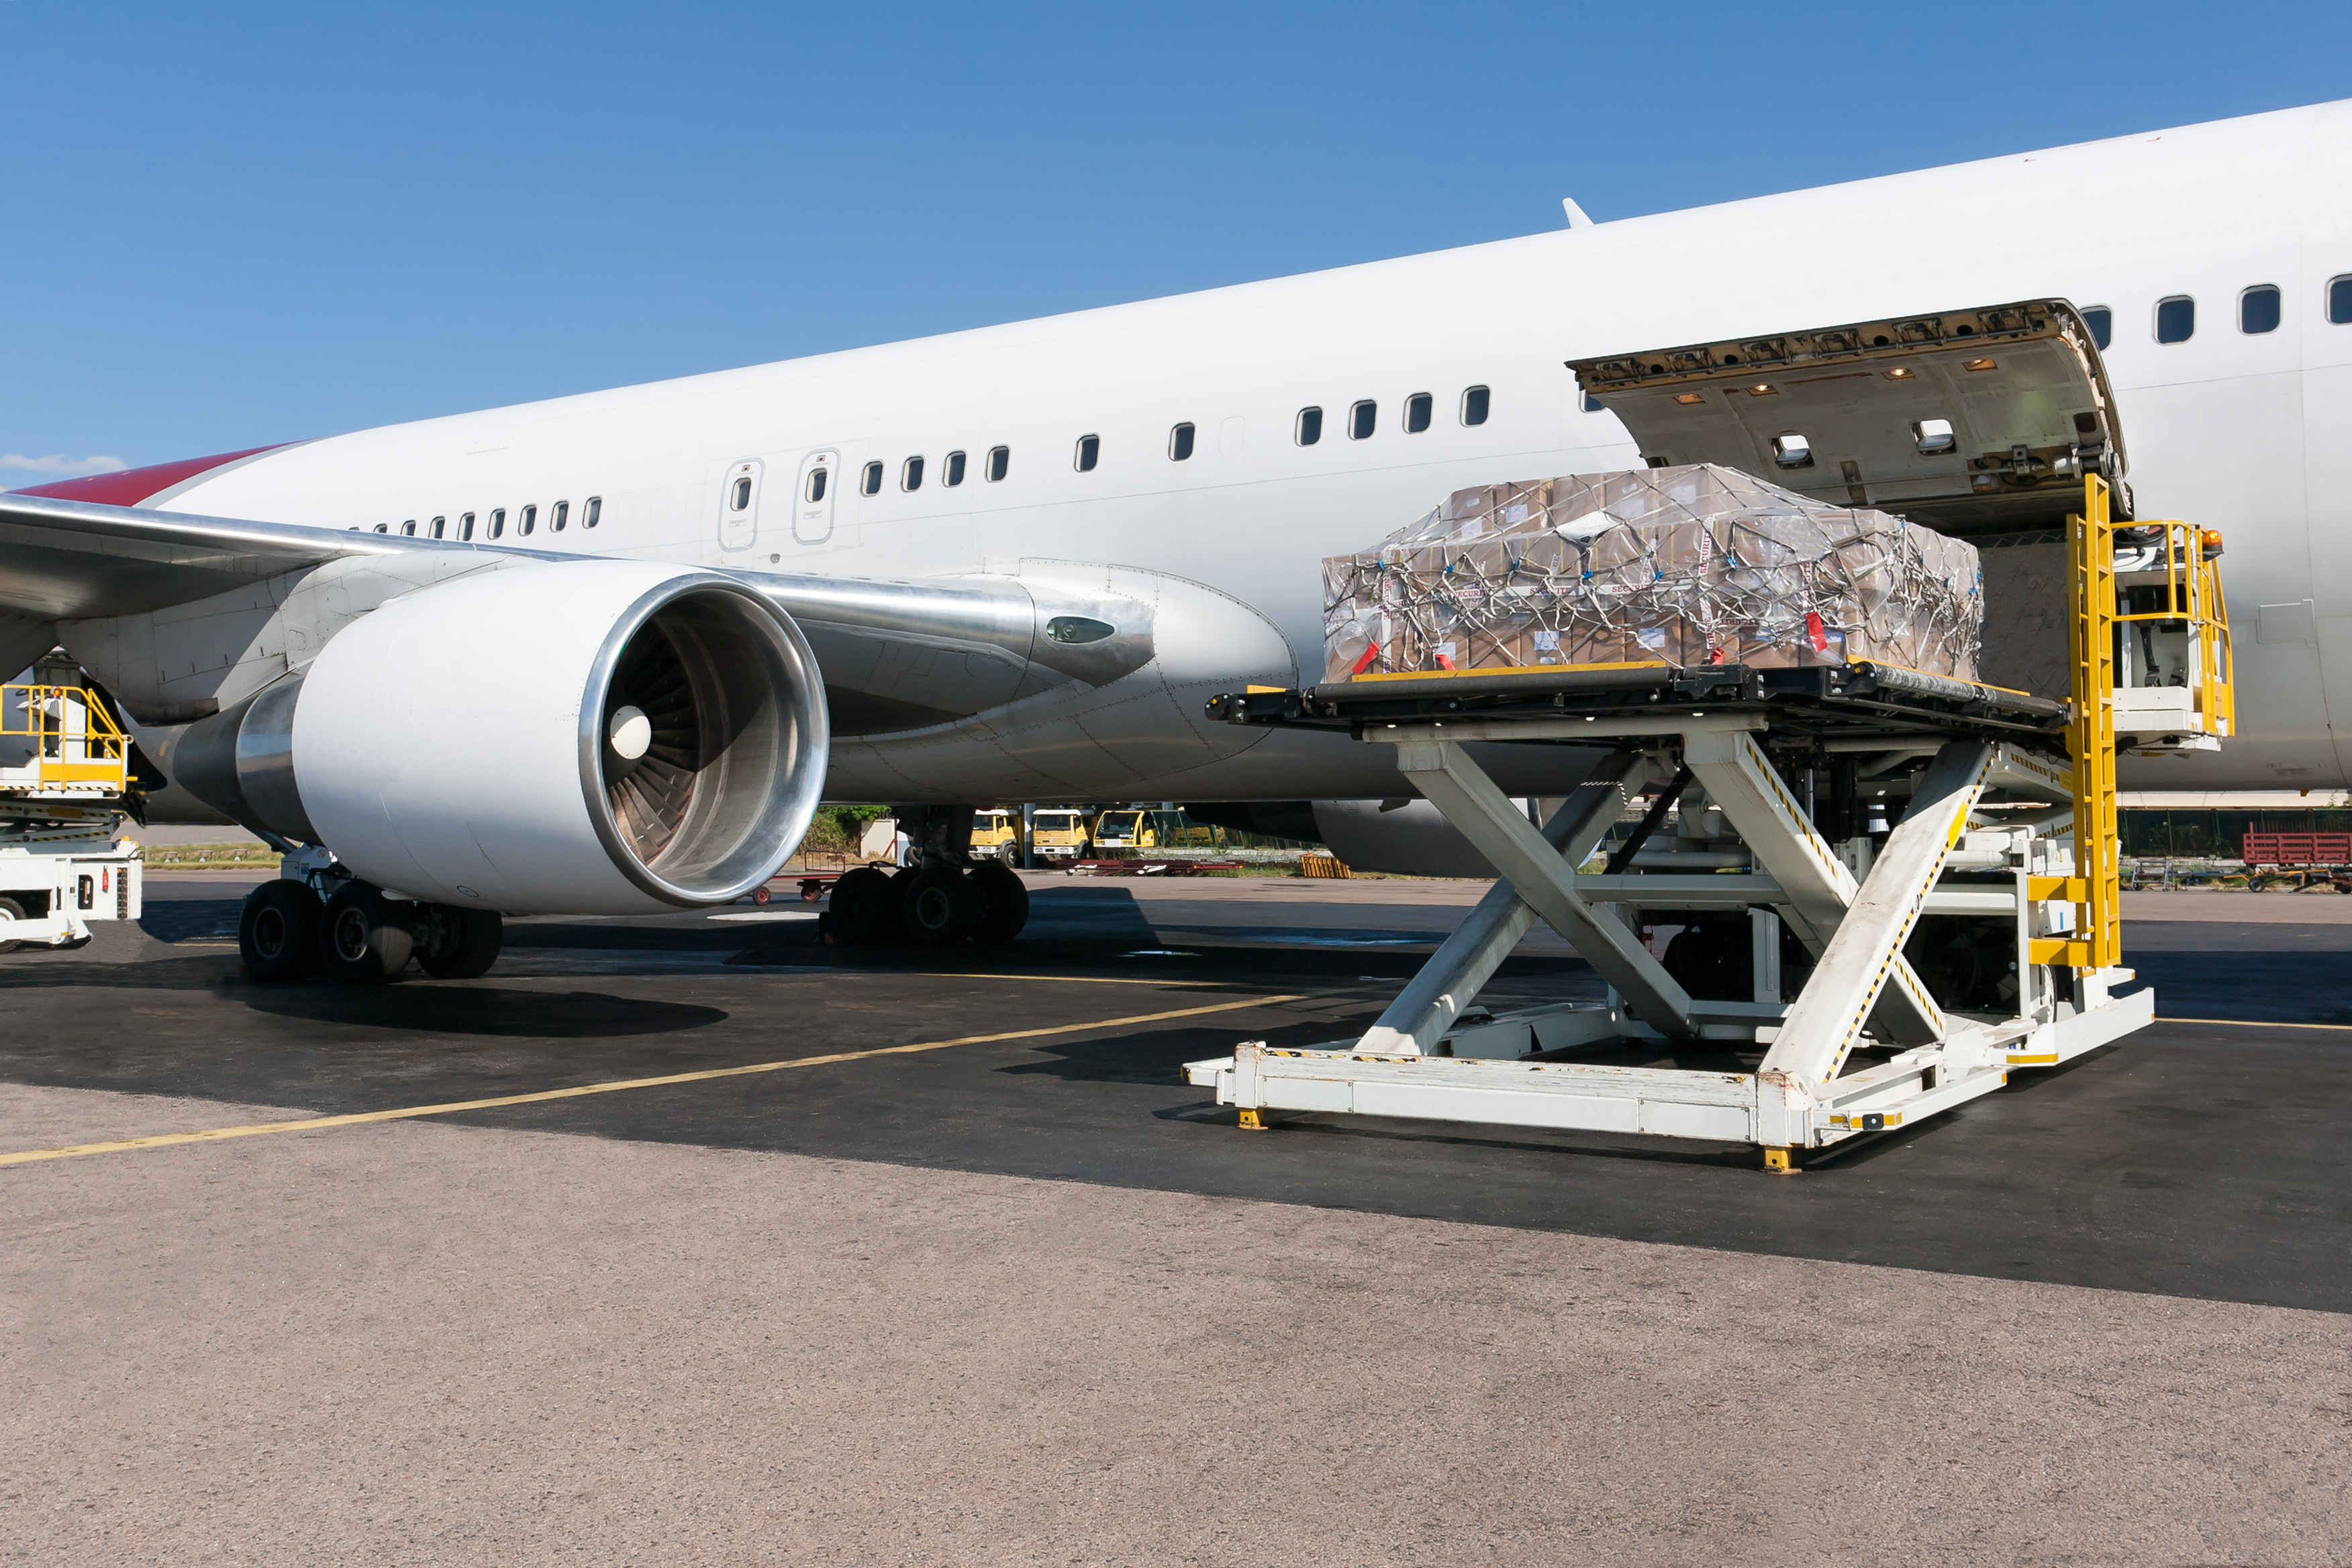 photodune-534979-loading-freight-in-airplane-l.jpg